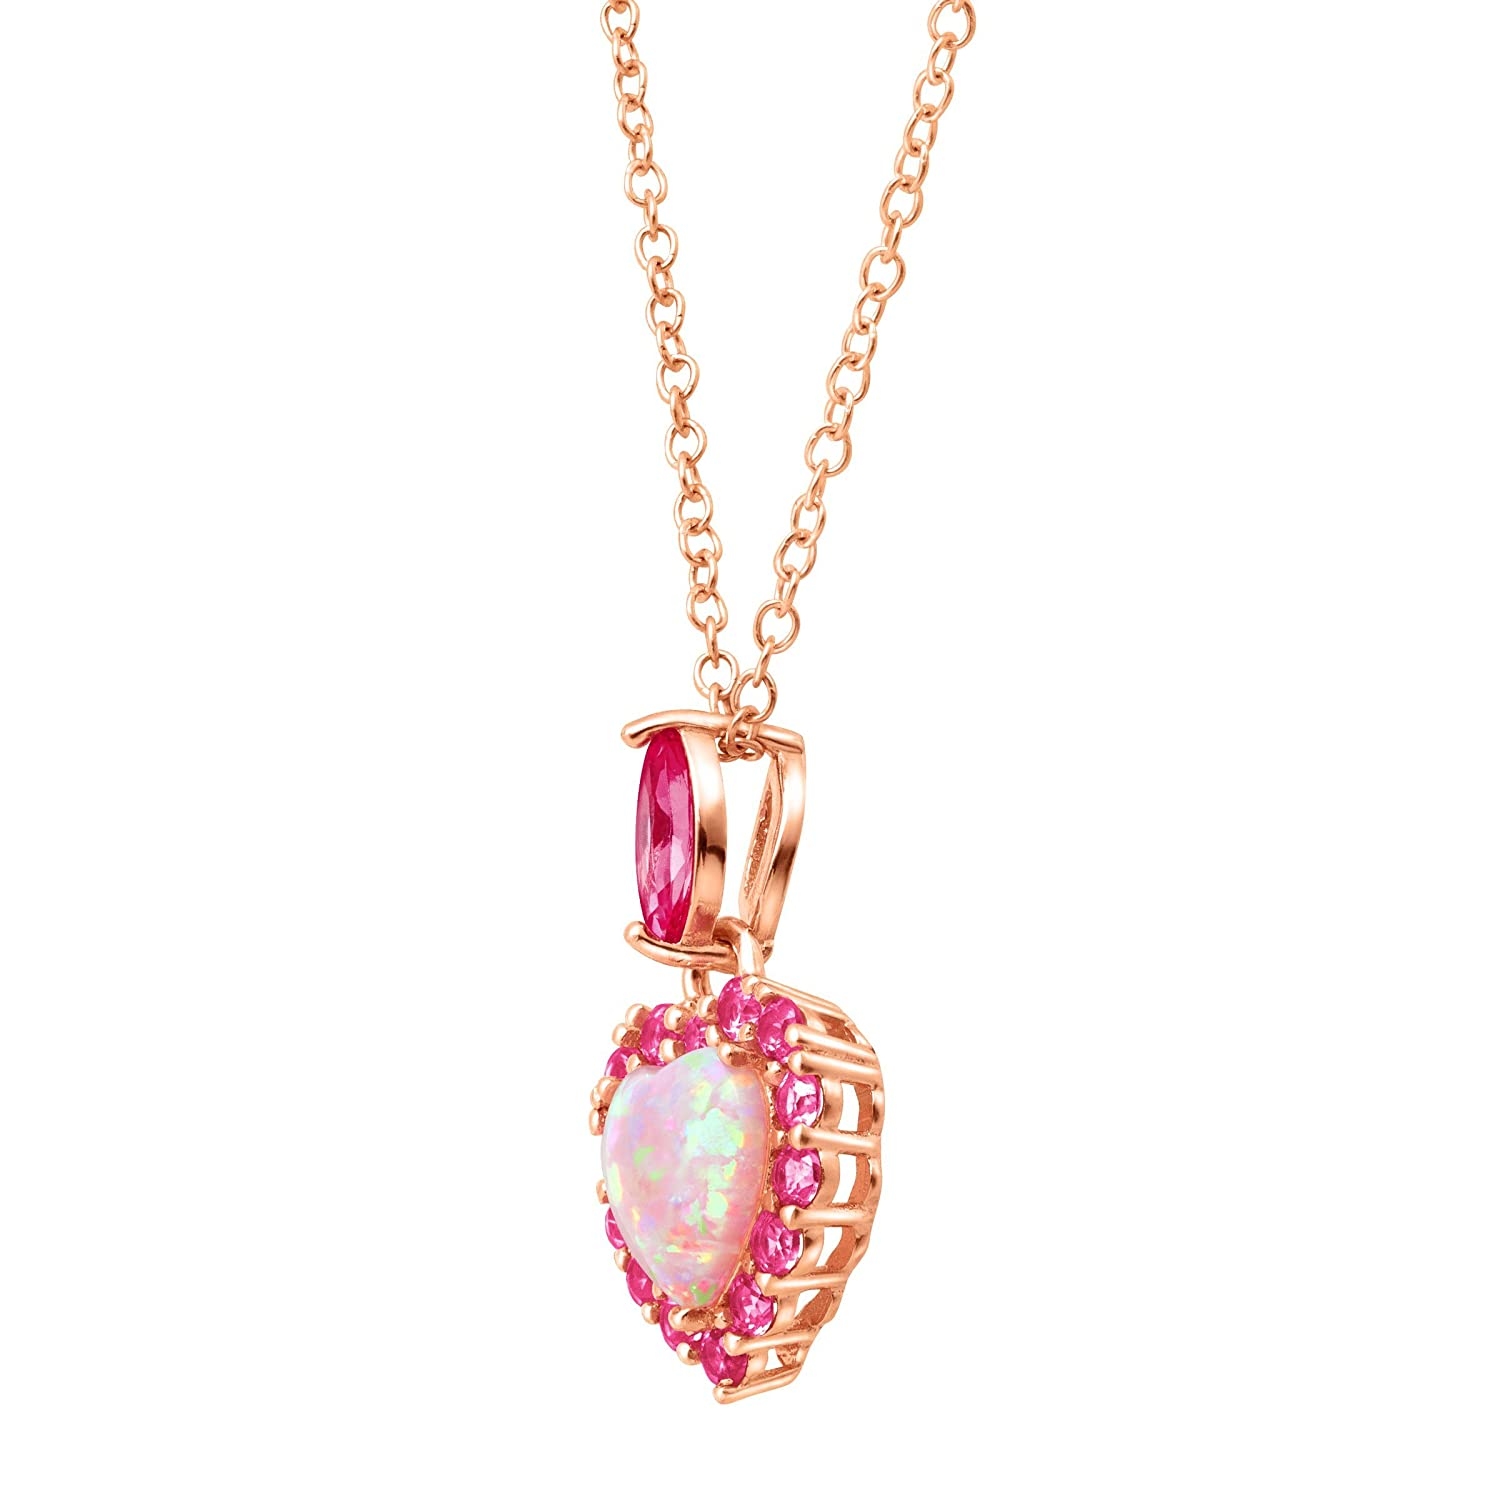 1 ct Created Opal Pink Sapphire Heart Pendant Necklace in 18K Rose Gold-Plated Sterling Silver